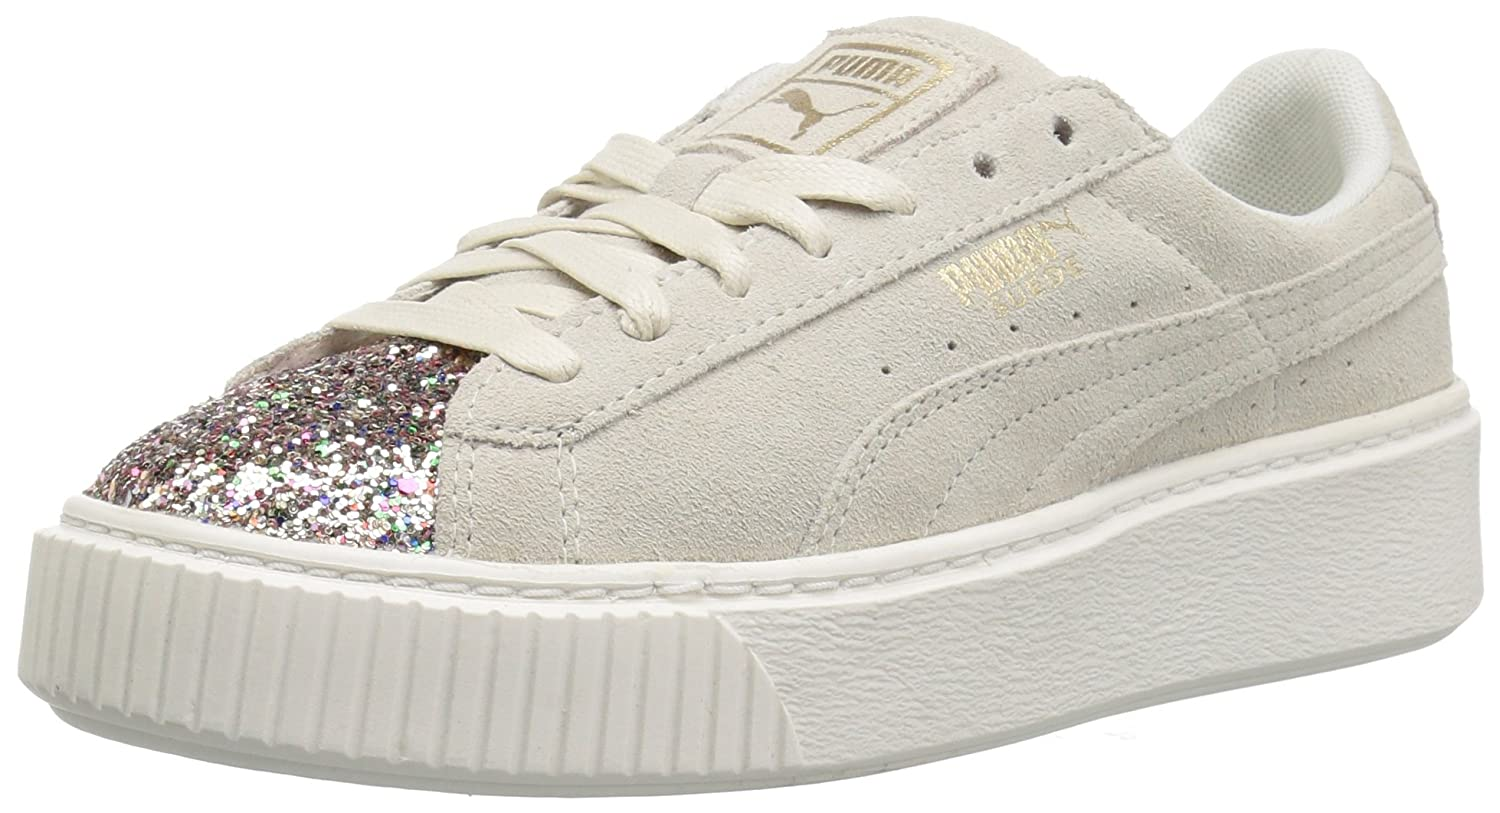 PUMA Womens Suede Crushed Gem Platform Marshmallow-Metallic Gold 7.5 M US